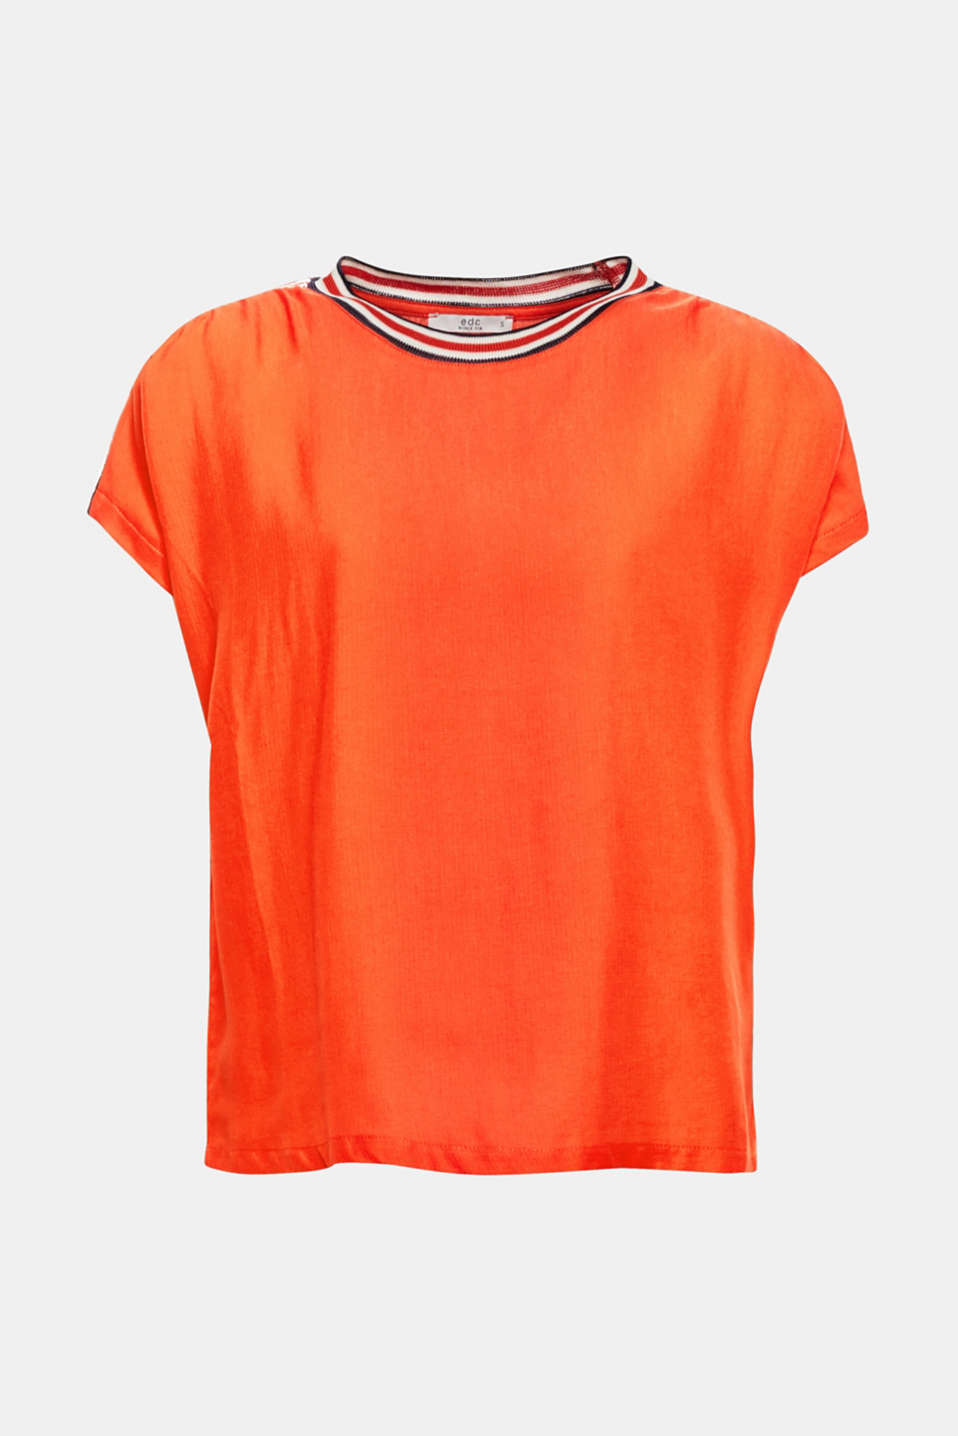 Striped, rib knit trims on the neckline and shoulders give this flowing blouse top a sporty update.